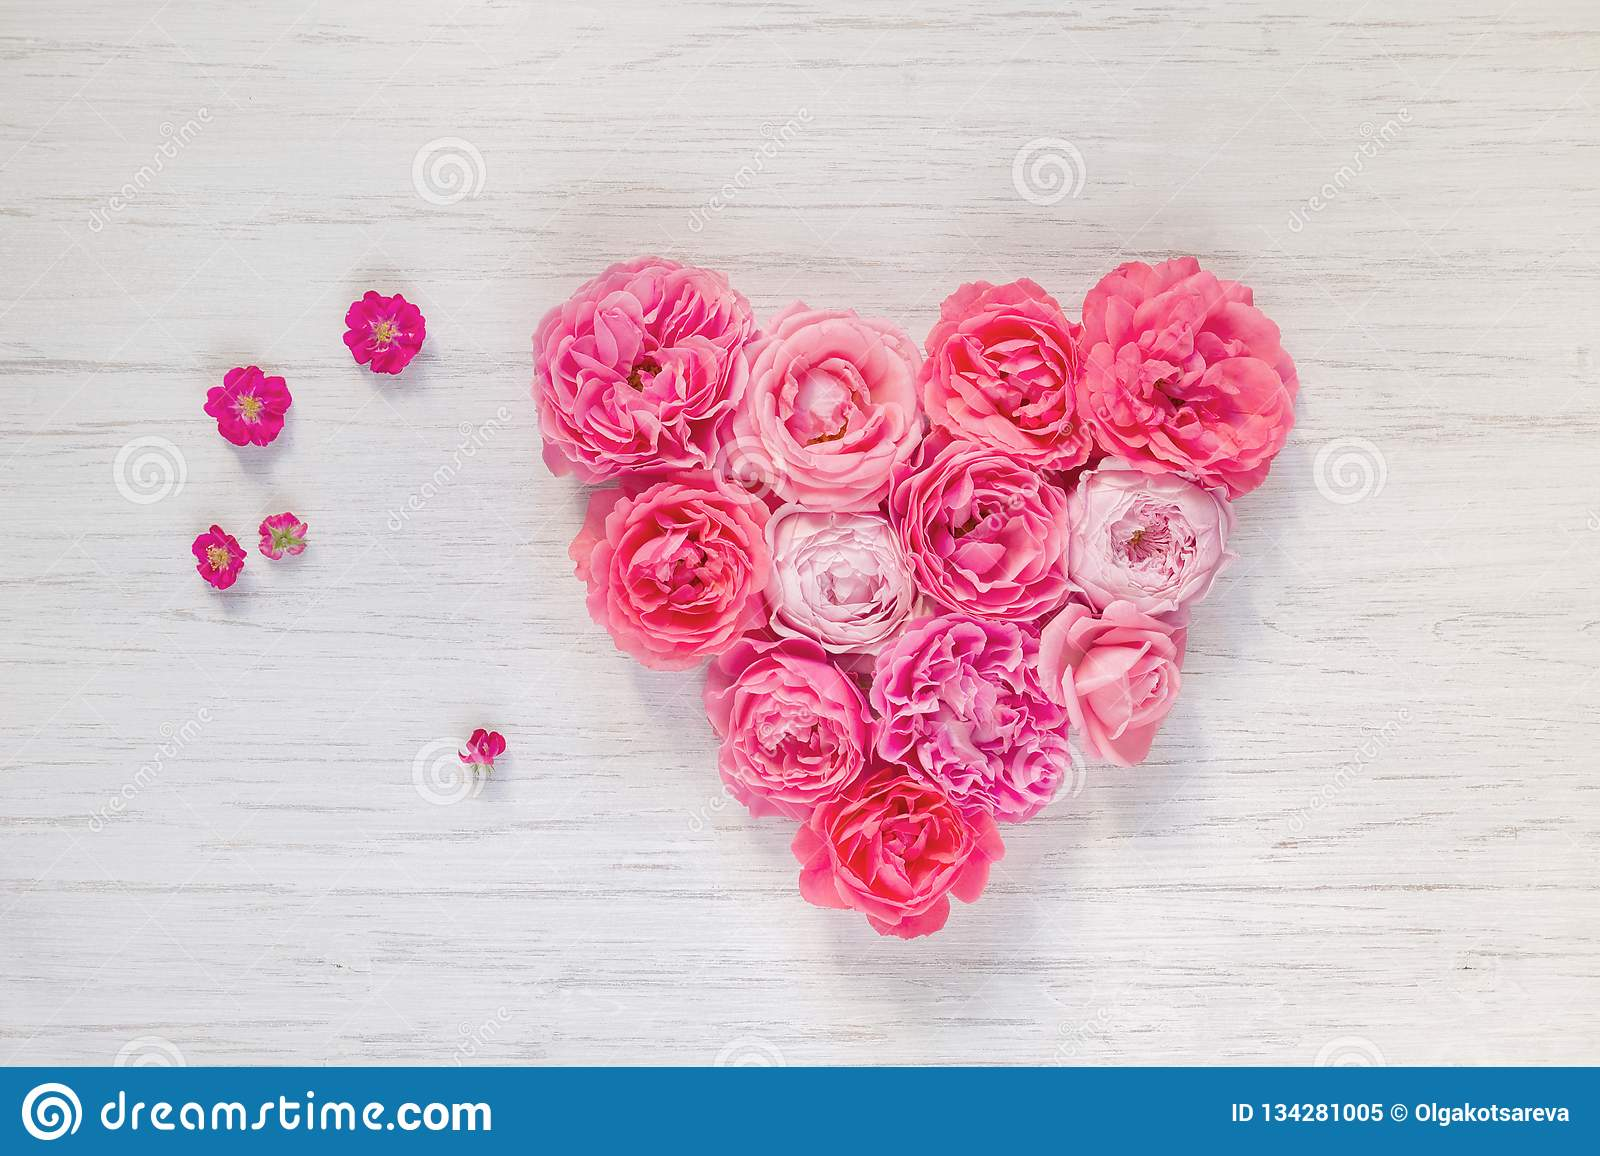 Heart of vintage pink rose flowers on white wooden background, top view